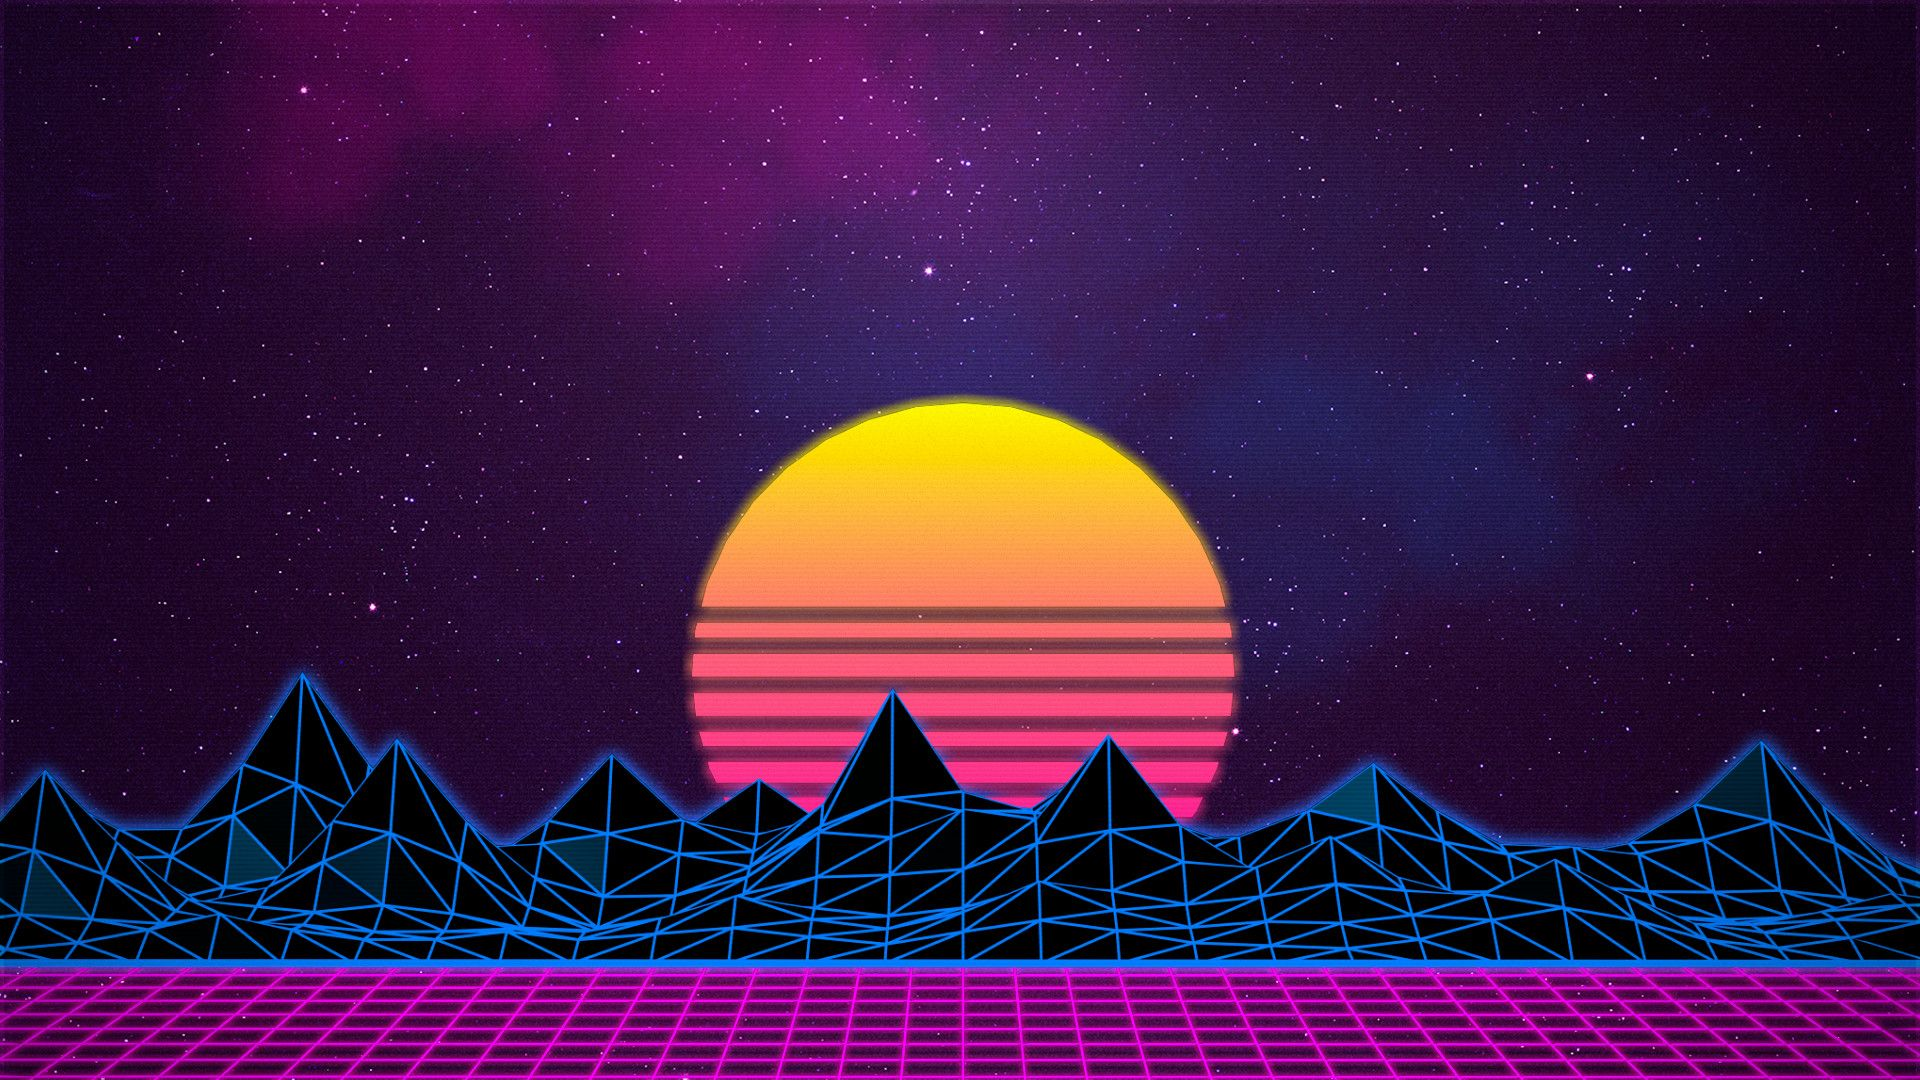 77 Neon 80s Wallpapers On Wallpaperplay Papel Tapiz Retro